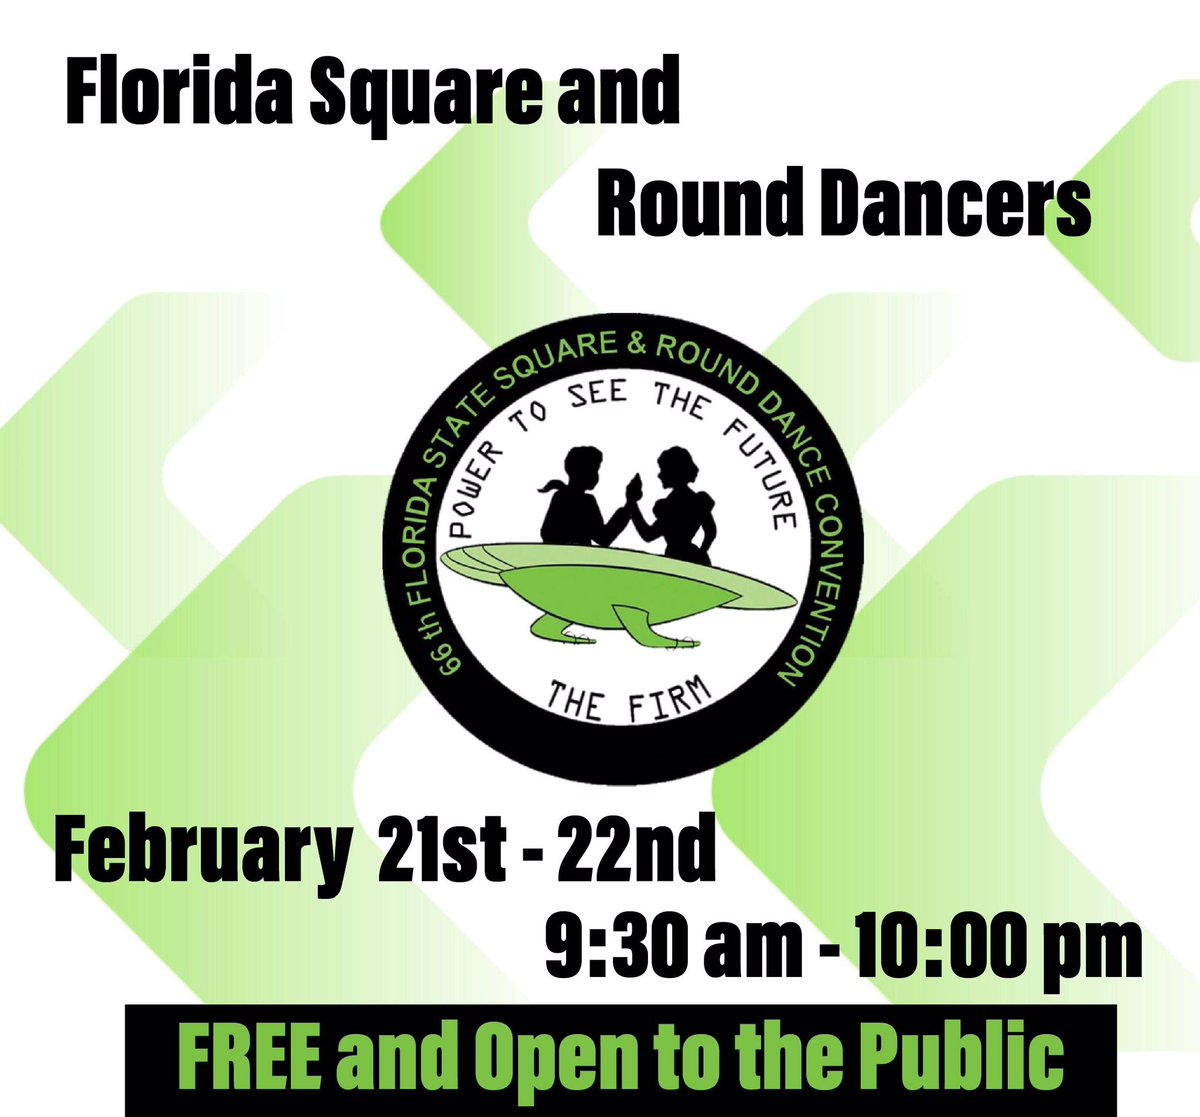 Check out our Weekend Events! - @theabkc Bully Classic 2 Dog Show - Florida Federation of Square and Round Dancers - - - #americanbullykennelclub #abkc #dogshow #floridafederationofsquaredancers #oceancenter #lovedaytonabeach #events #venue #daytonabeach #volusiacounty #floridapic.twitter.com/nEIieLLWz3 – at Ocean Center Daytona Beach